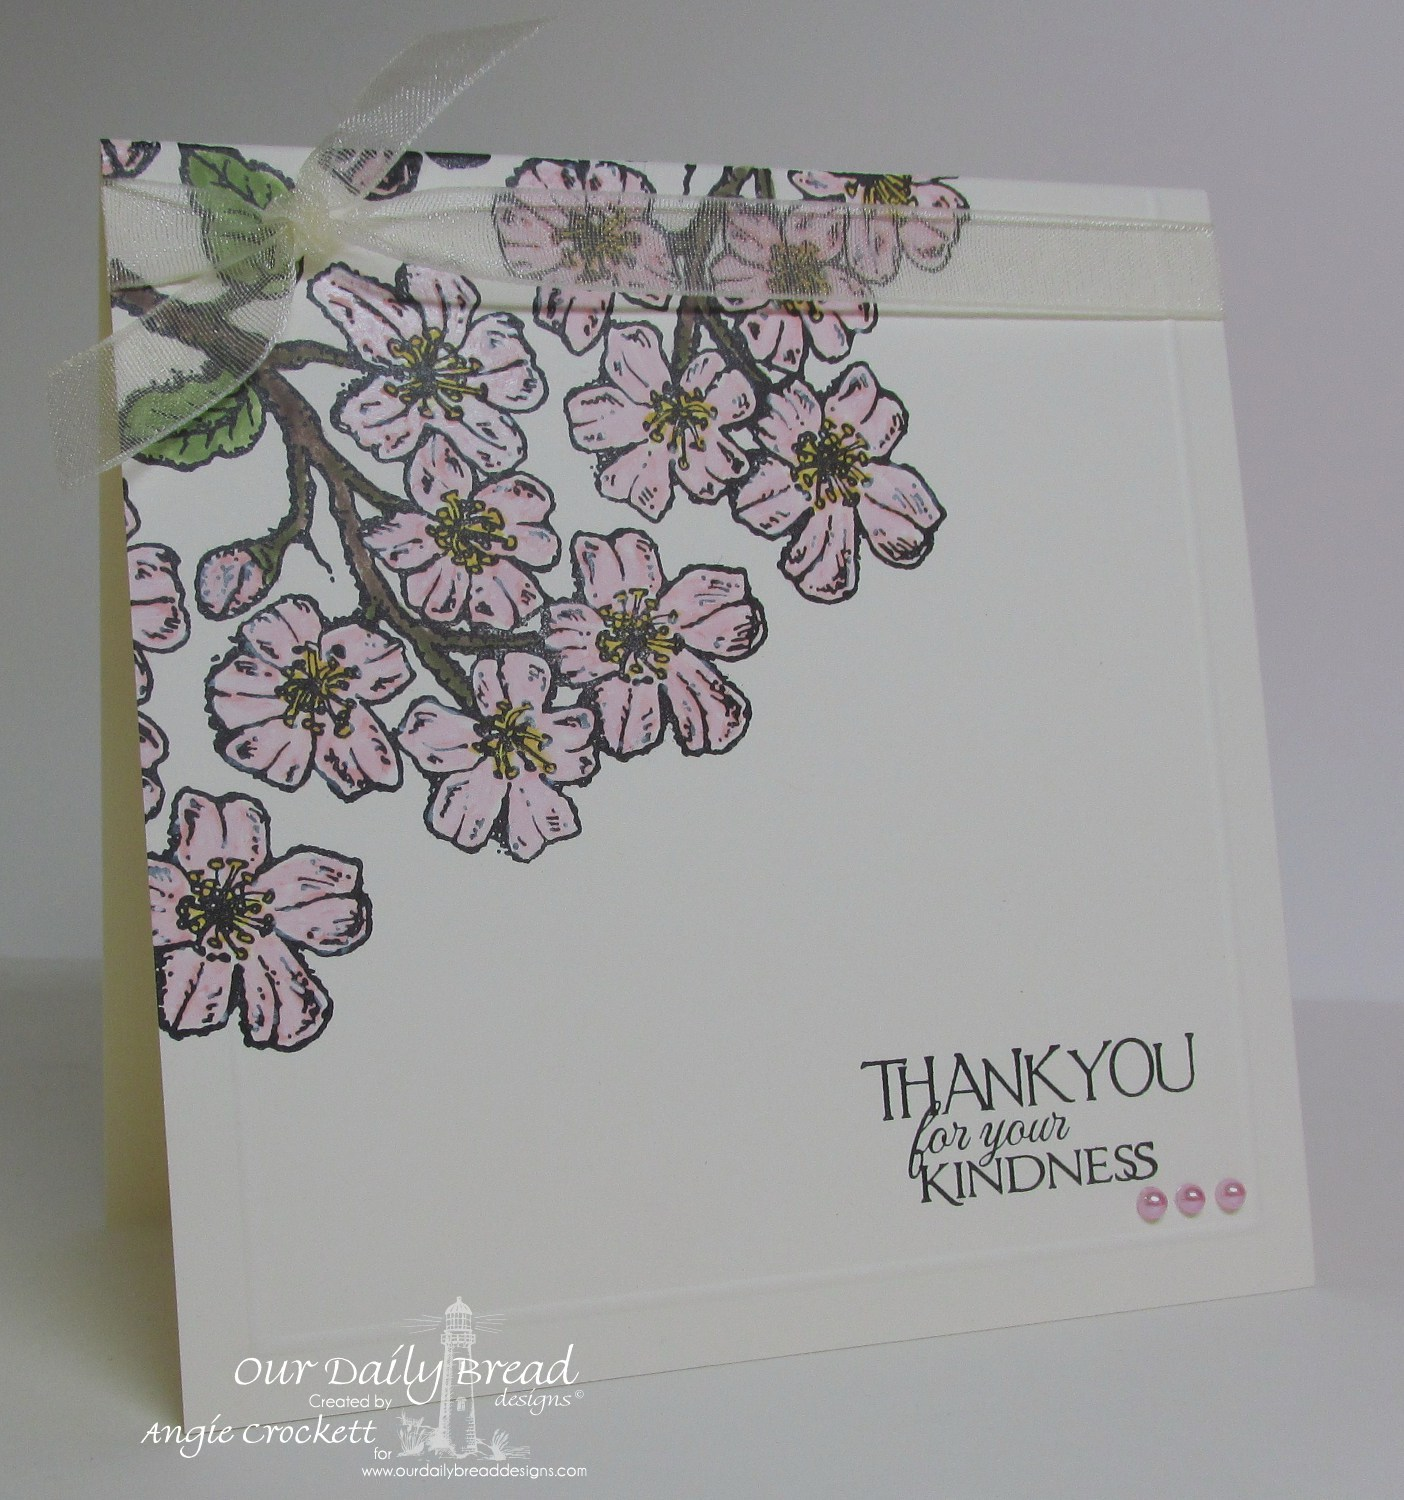 Stamps - Our Daily Bread Designs Cherry Blossom